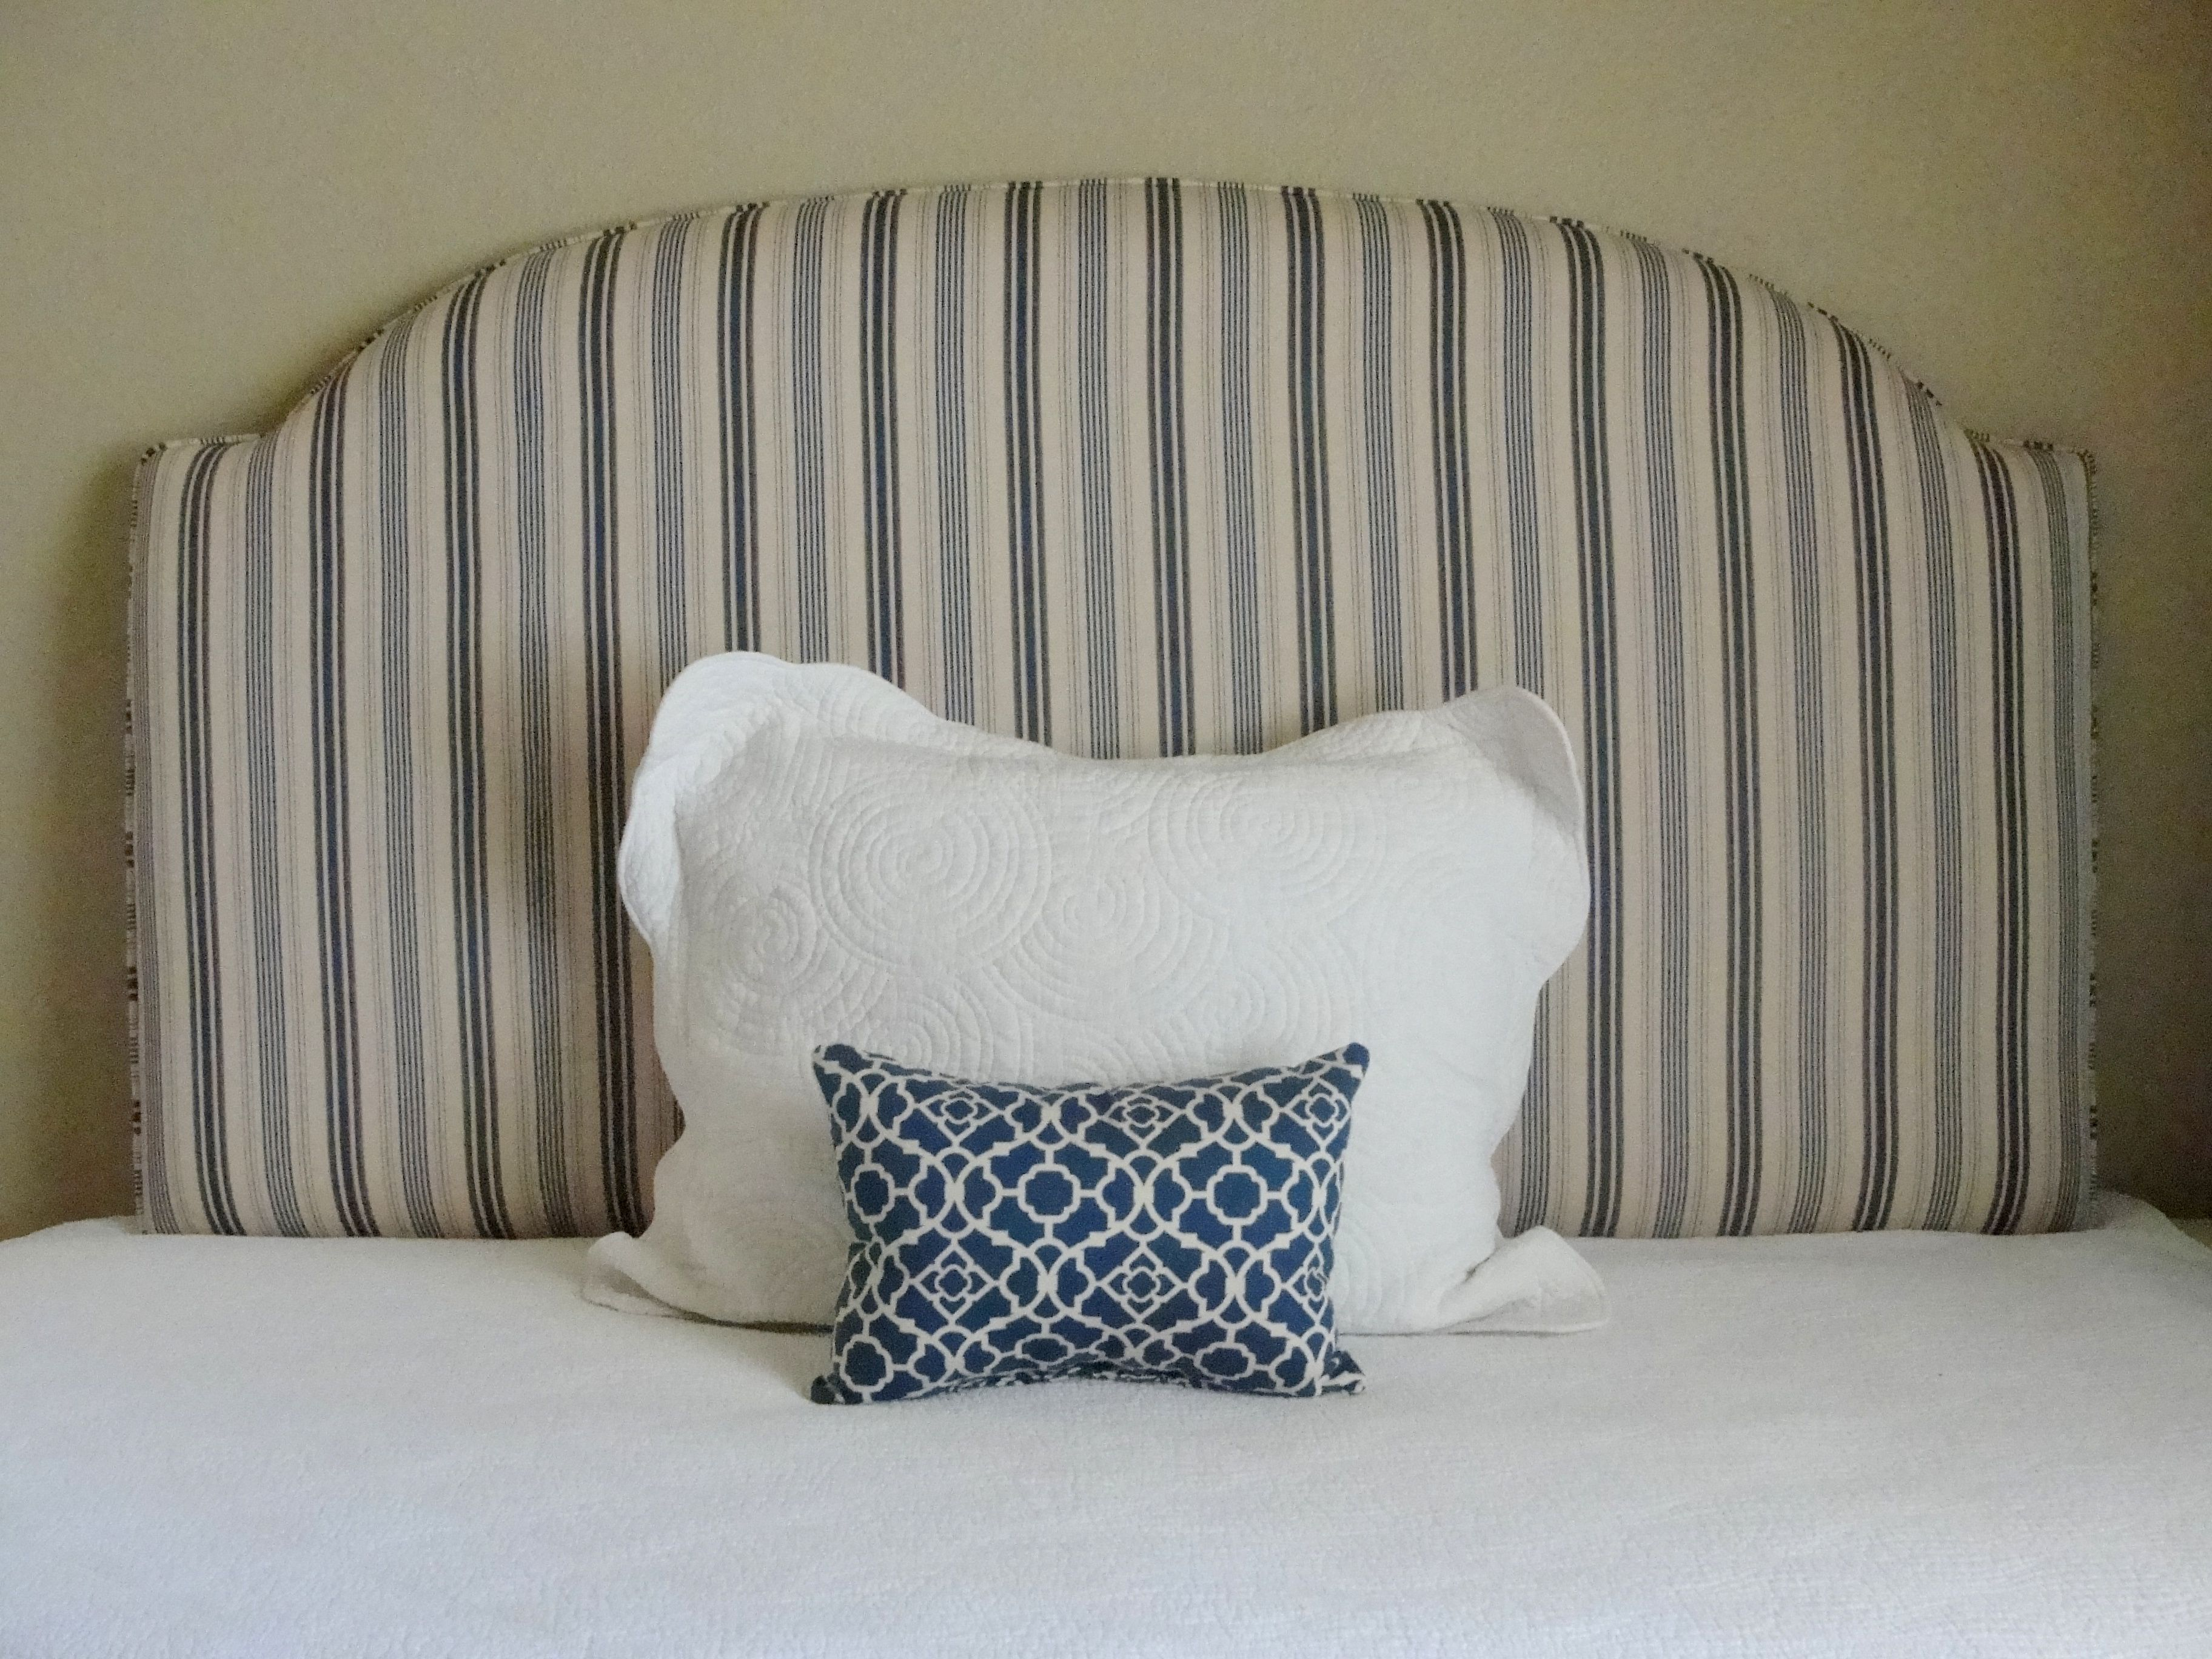 girl an create designs headboards queen also size navy for images black upholstered of headboard bed full storage blue uncategorizedhandmade and with